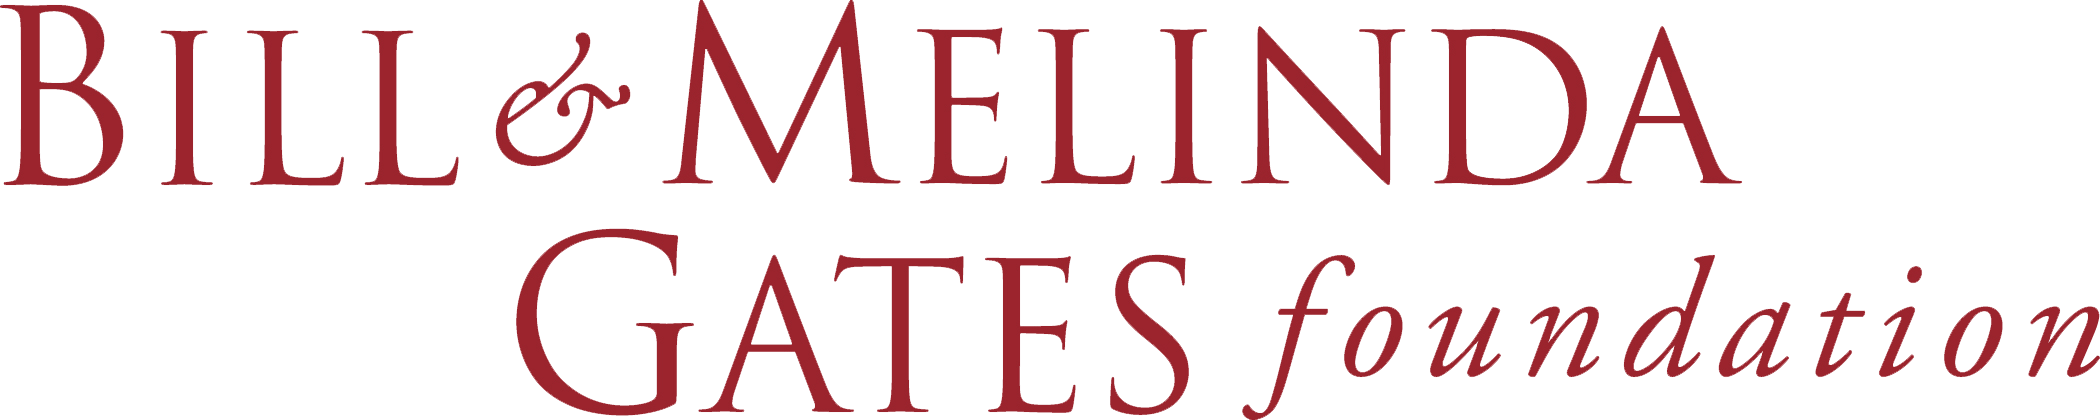 Bill and Melinda Gates logo